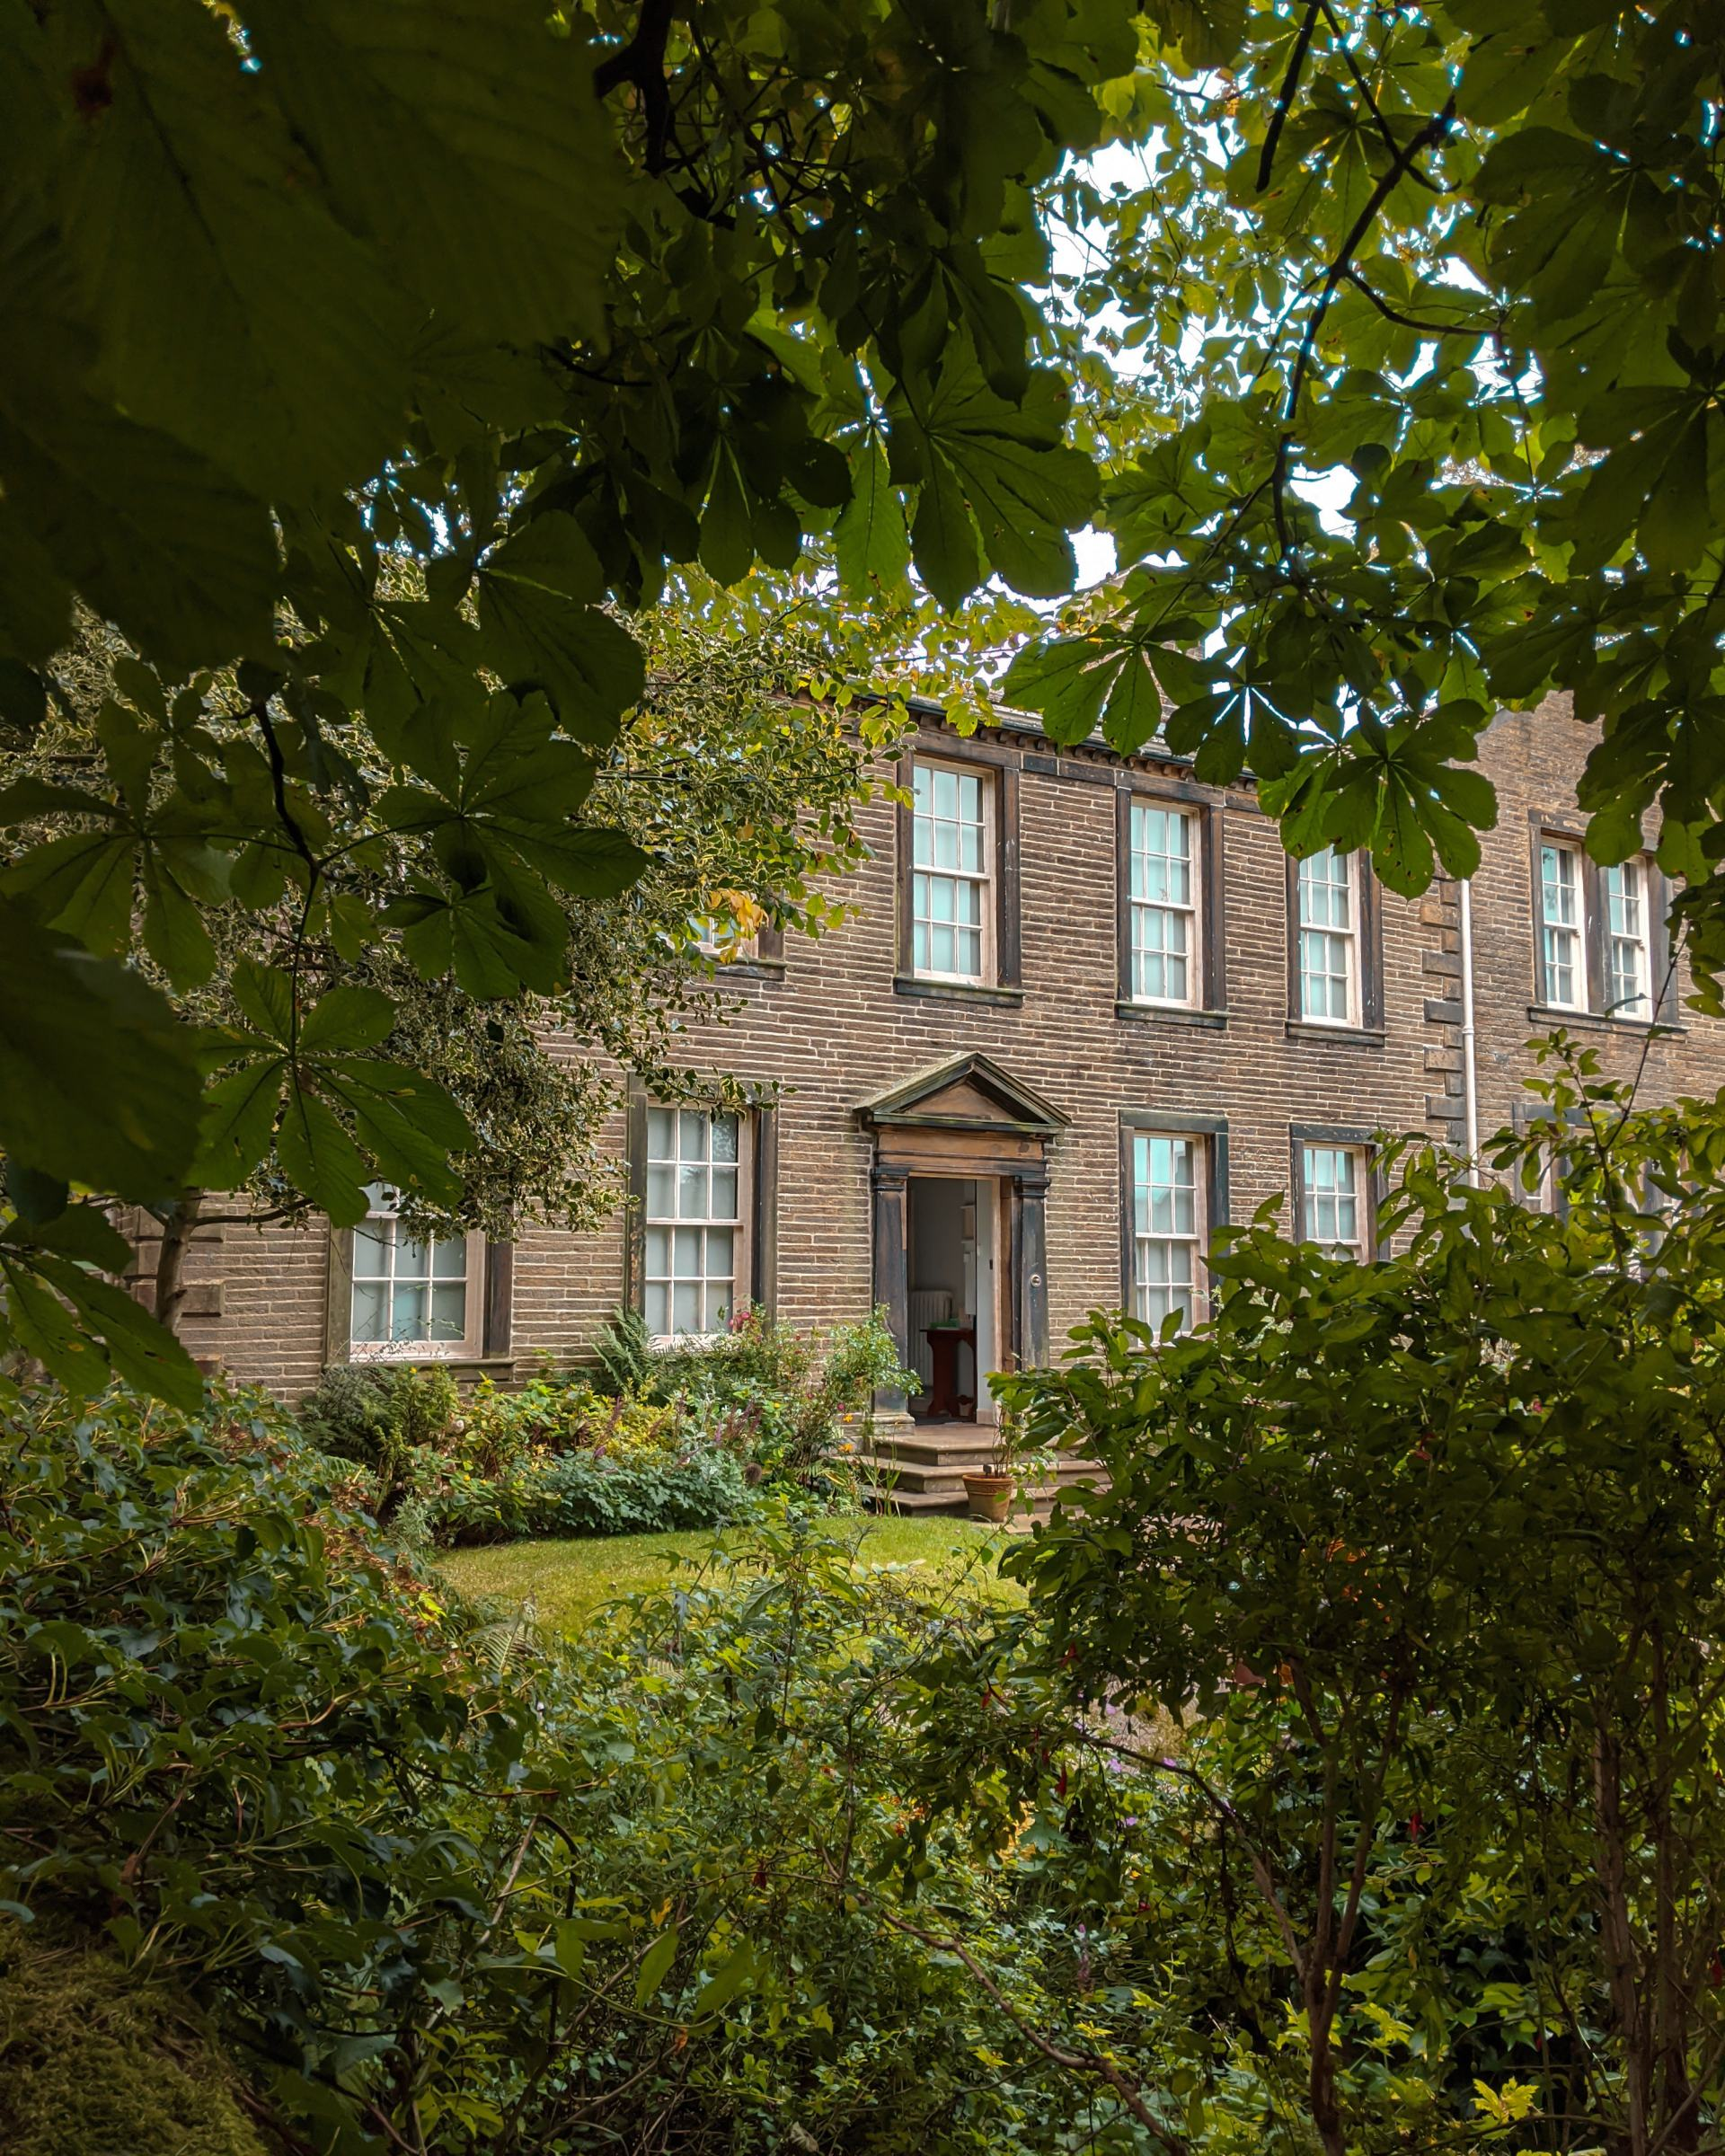 The front of Brontë Parsonage Museum through green leaves.